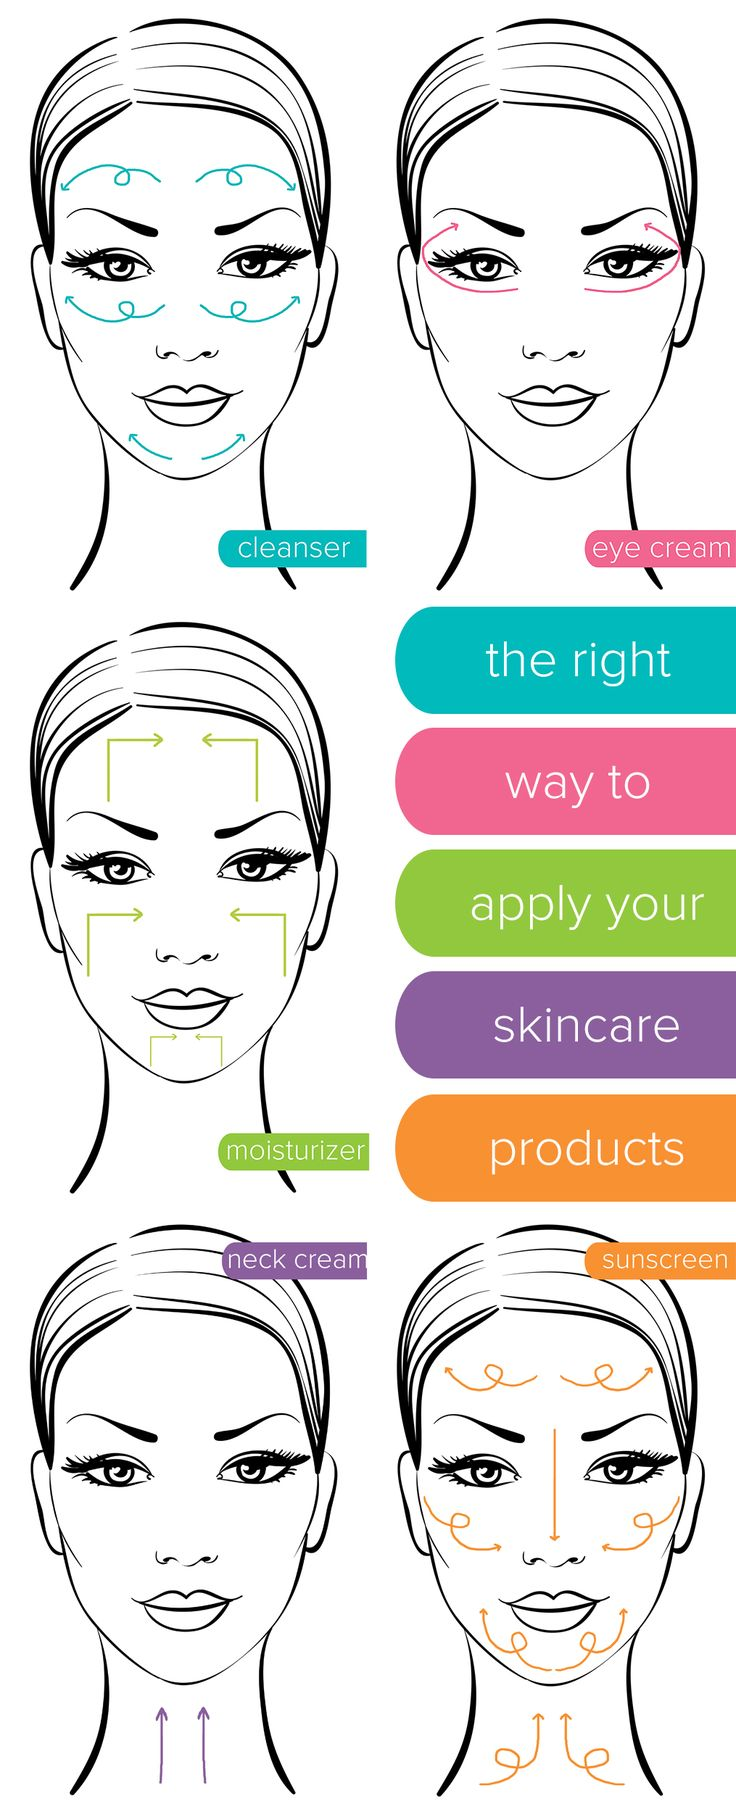 This guide will teach you the right way to apply your skincare products. Try incorporating these tips for putting on cleanser, moisturizer and sunscreen into your daily beauty routine.